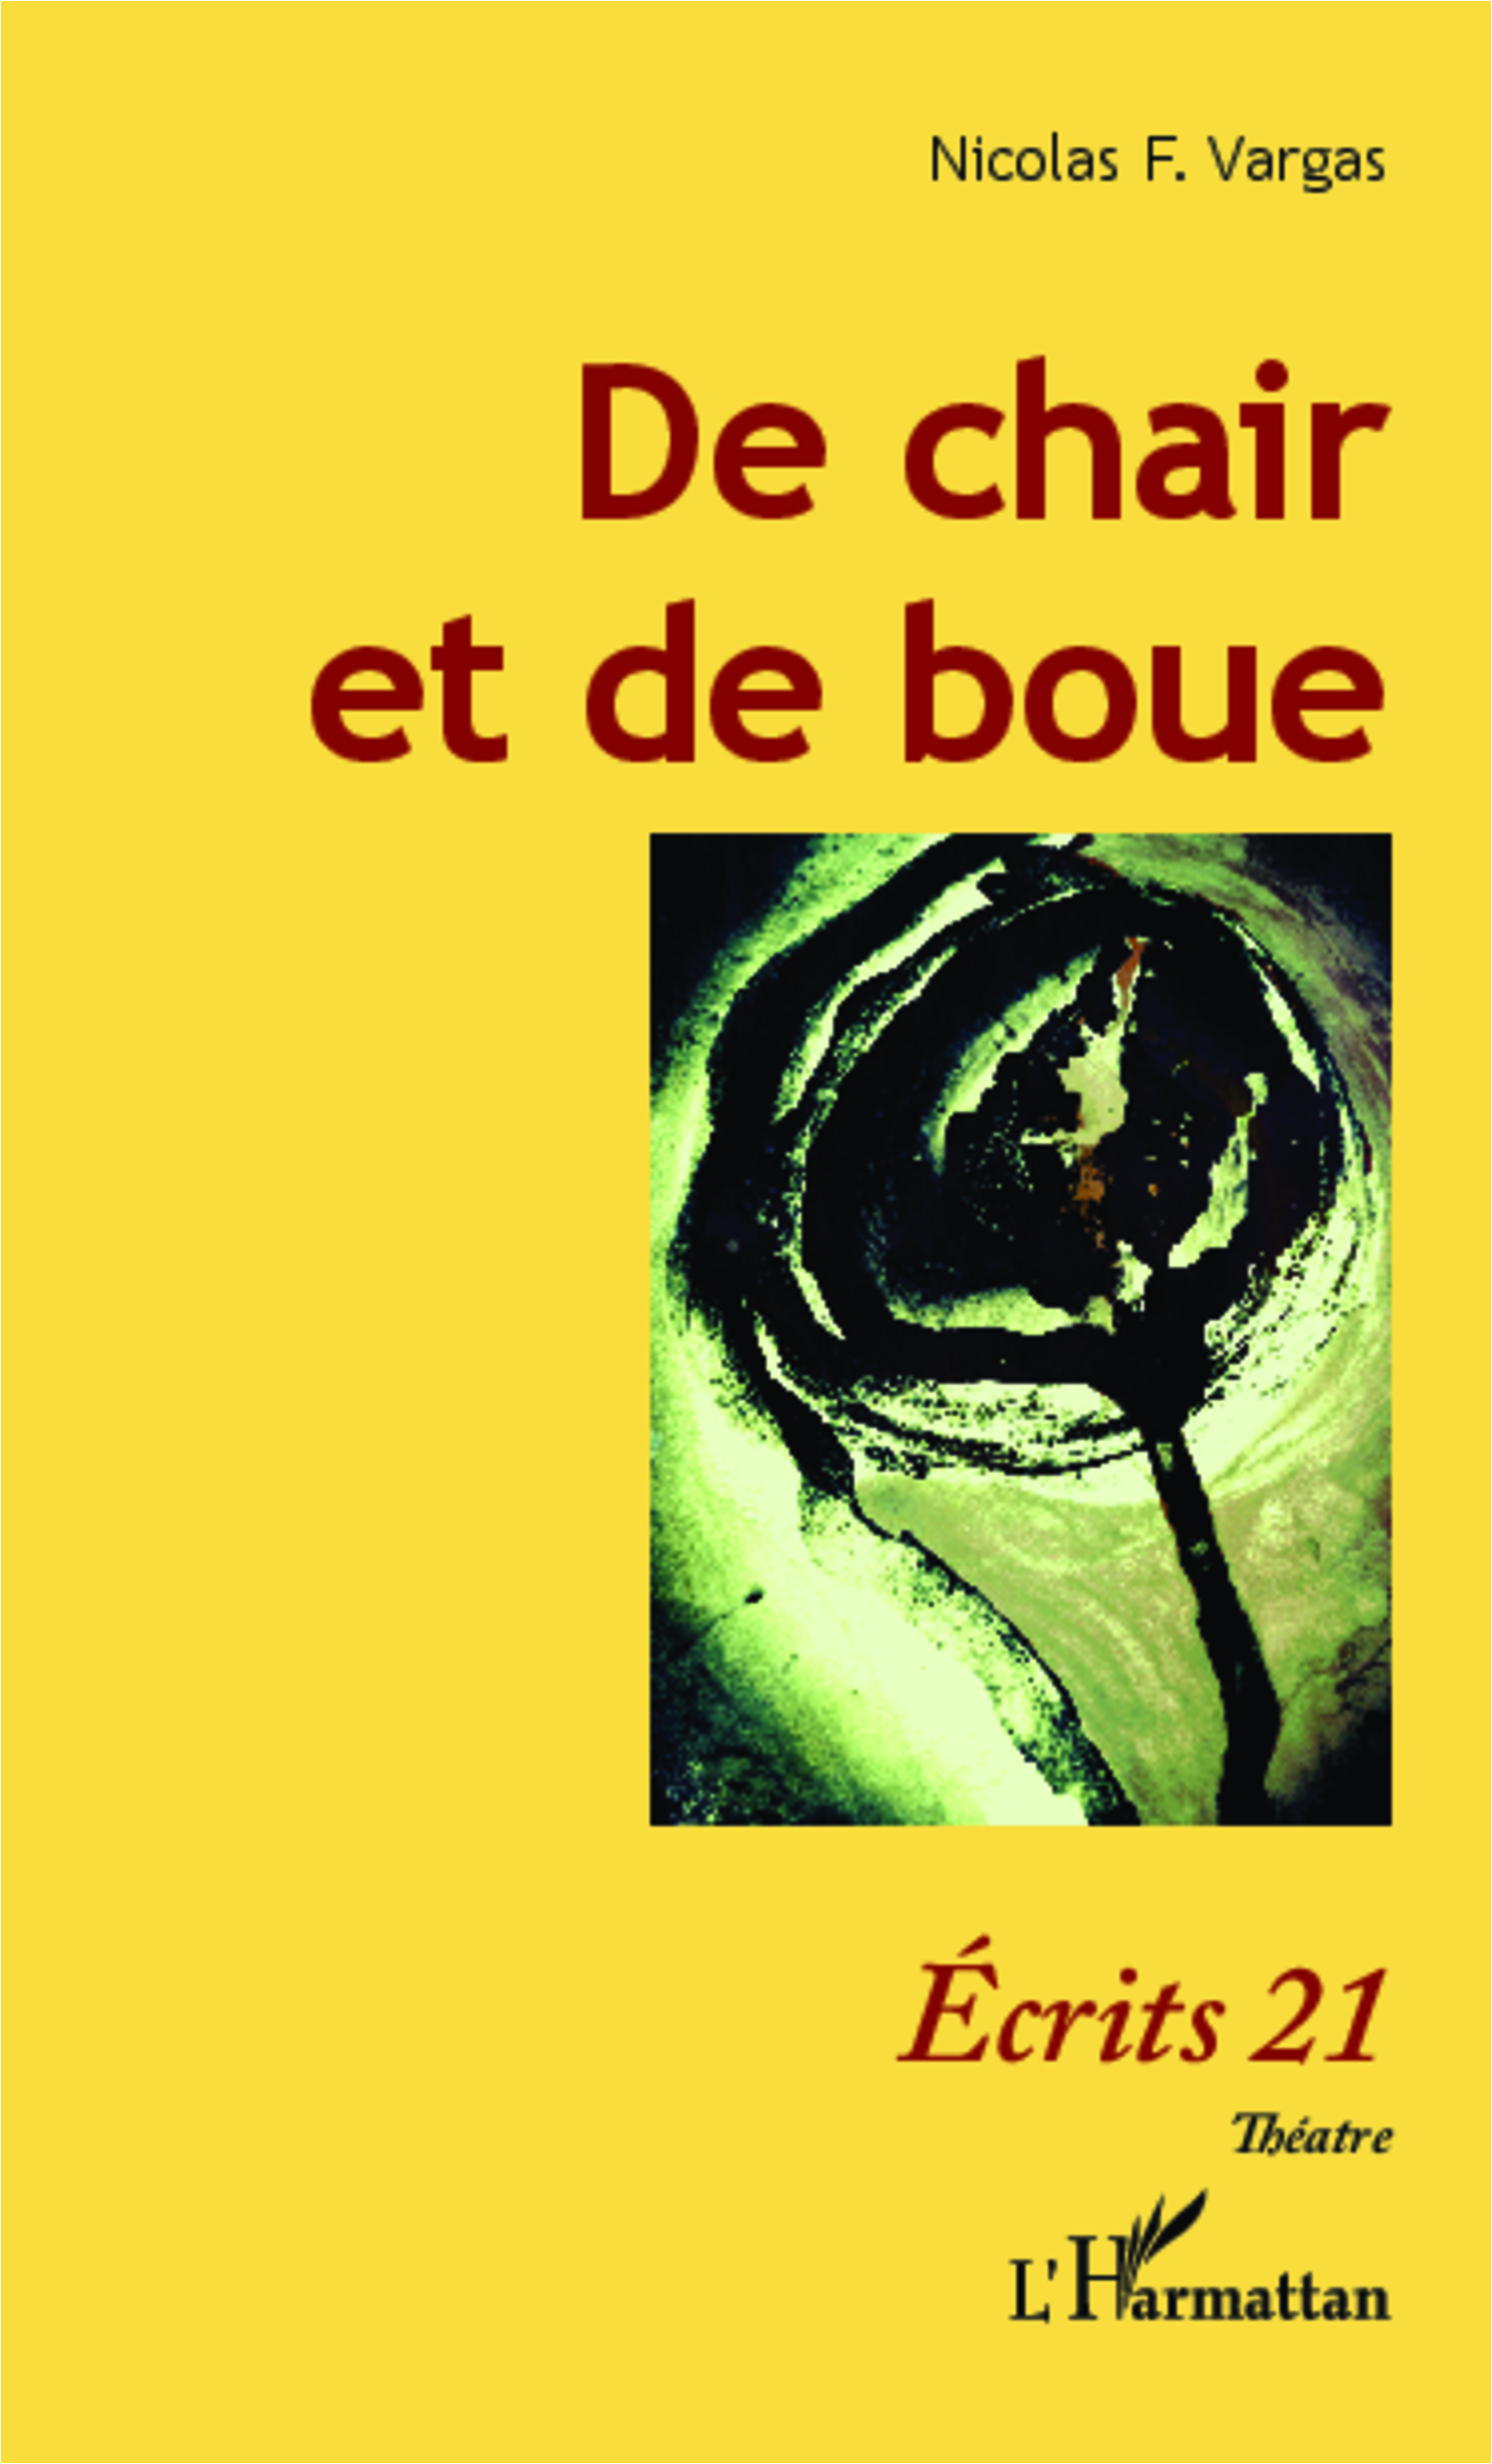 De chair et de boue